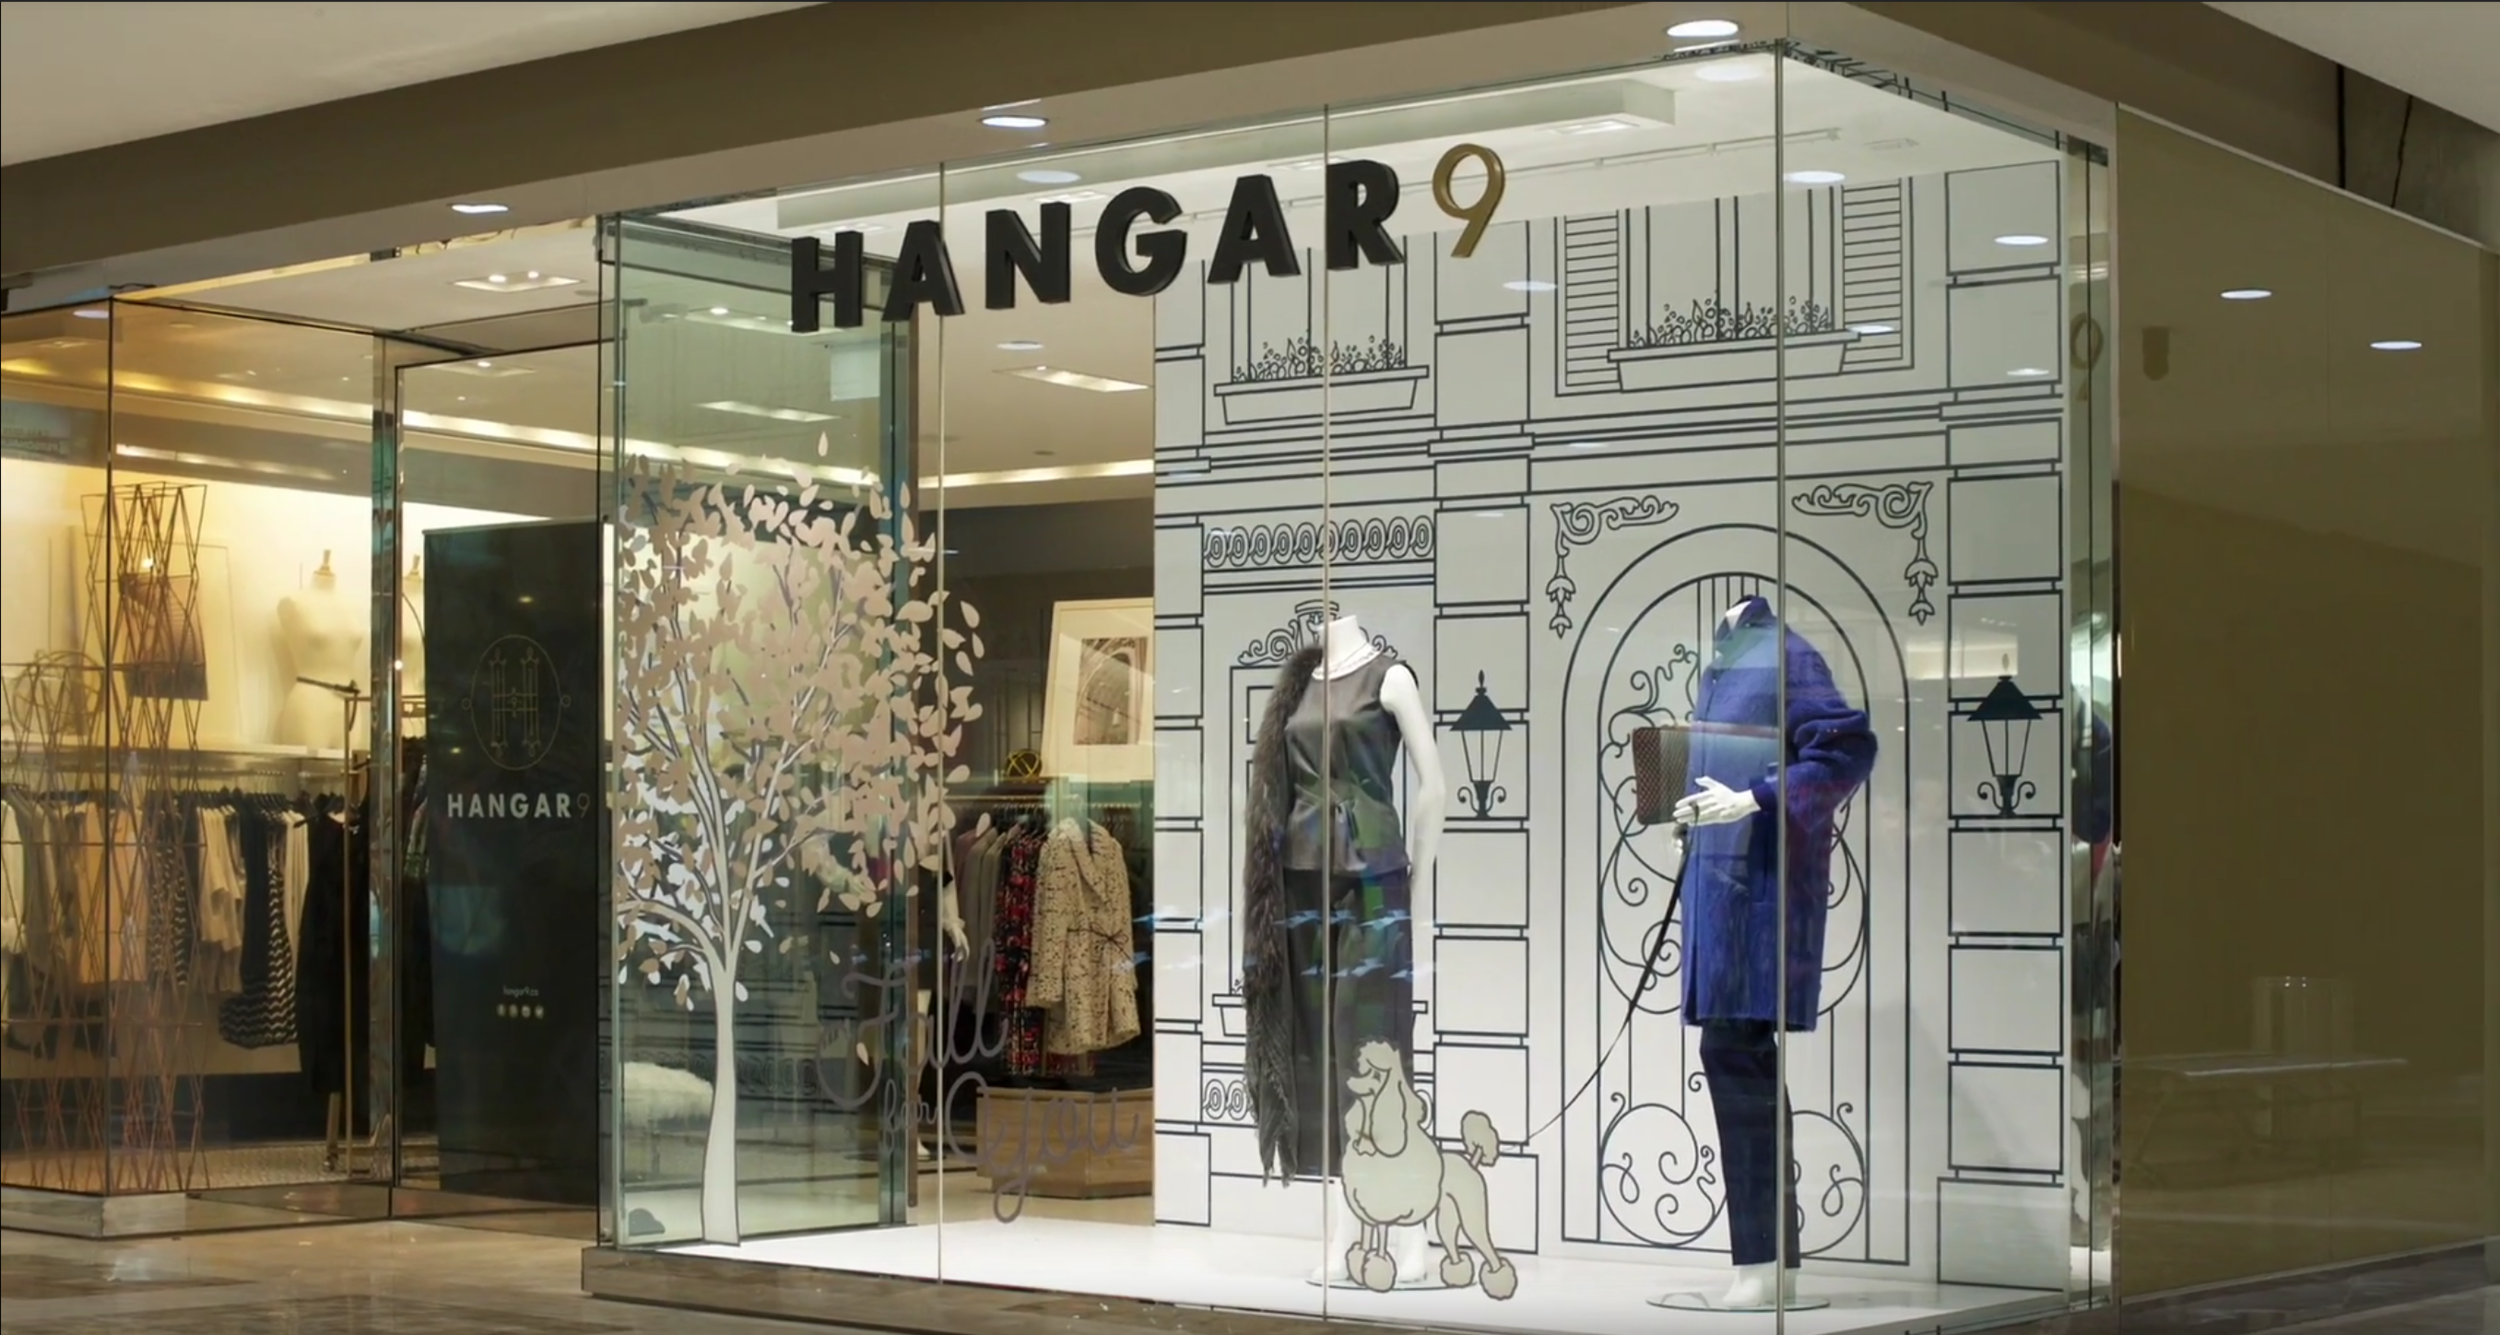 Store Accents - Hangar9 Store.png